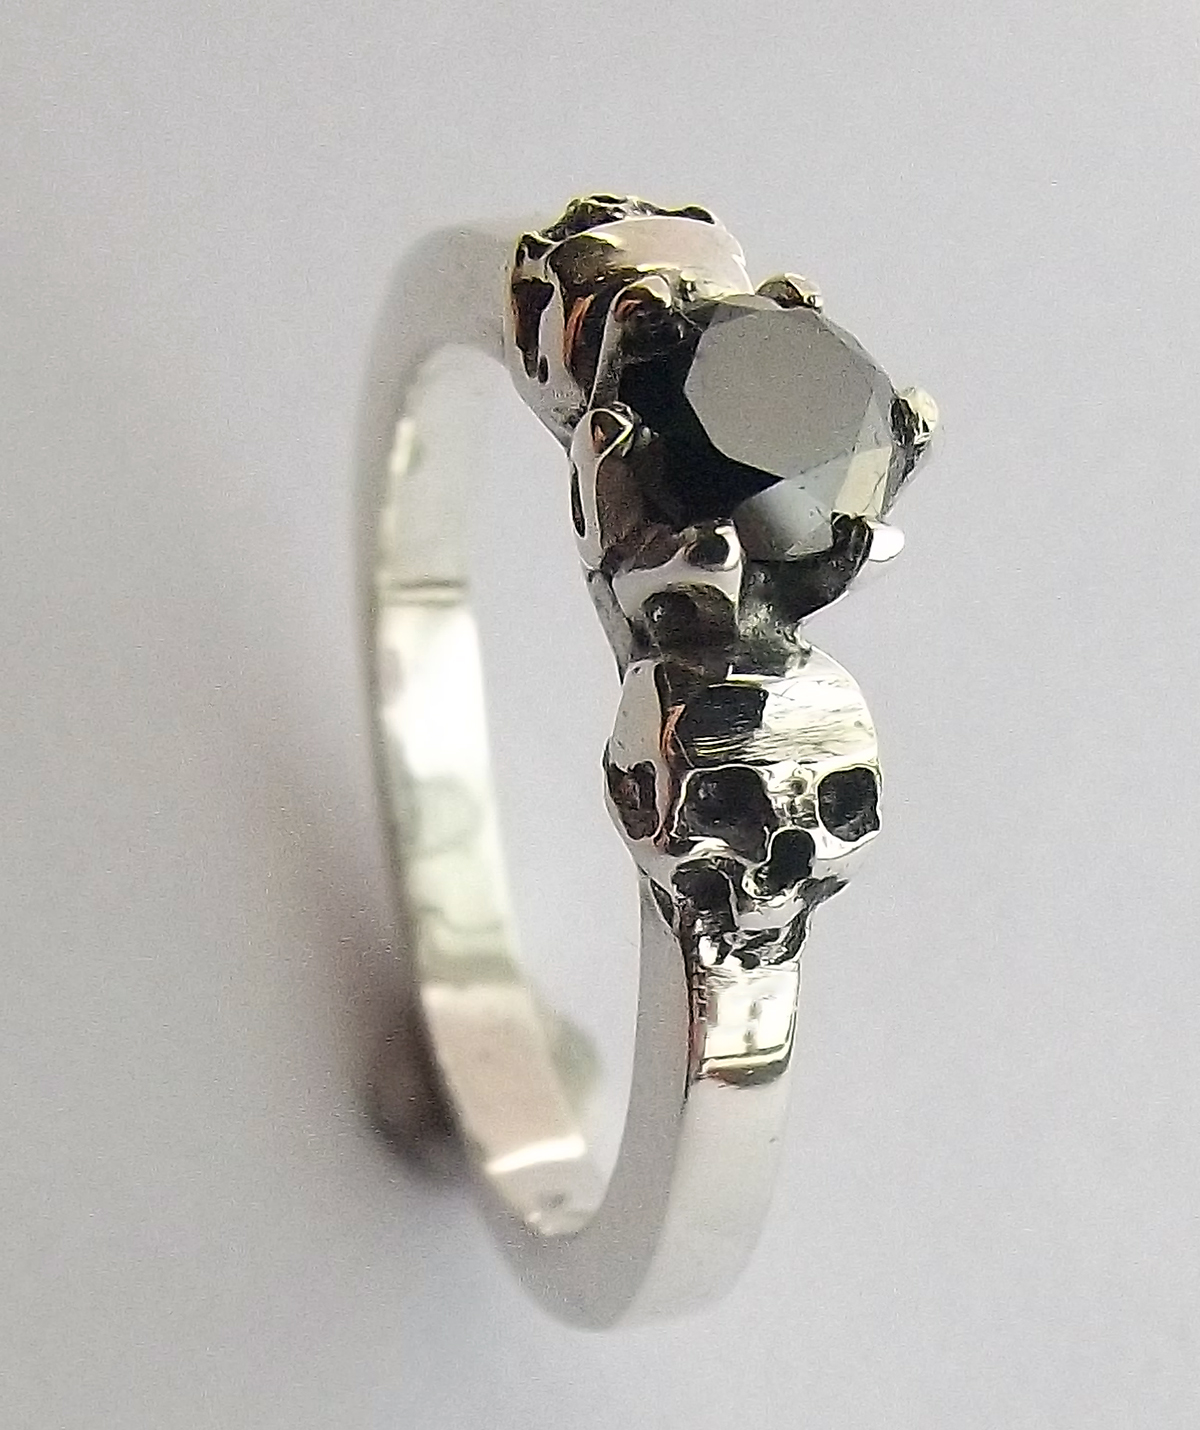 Skull Ring made by Dazzling Jewellers (13)